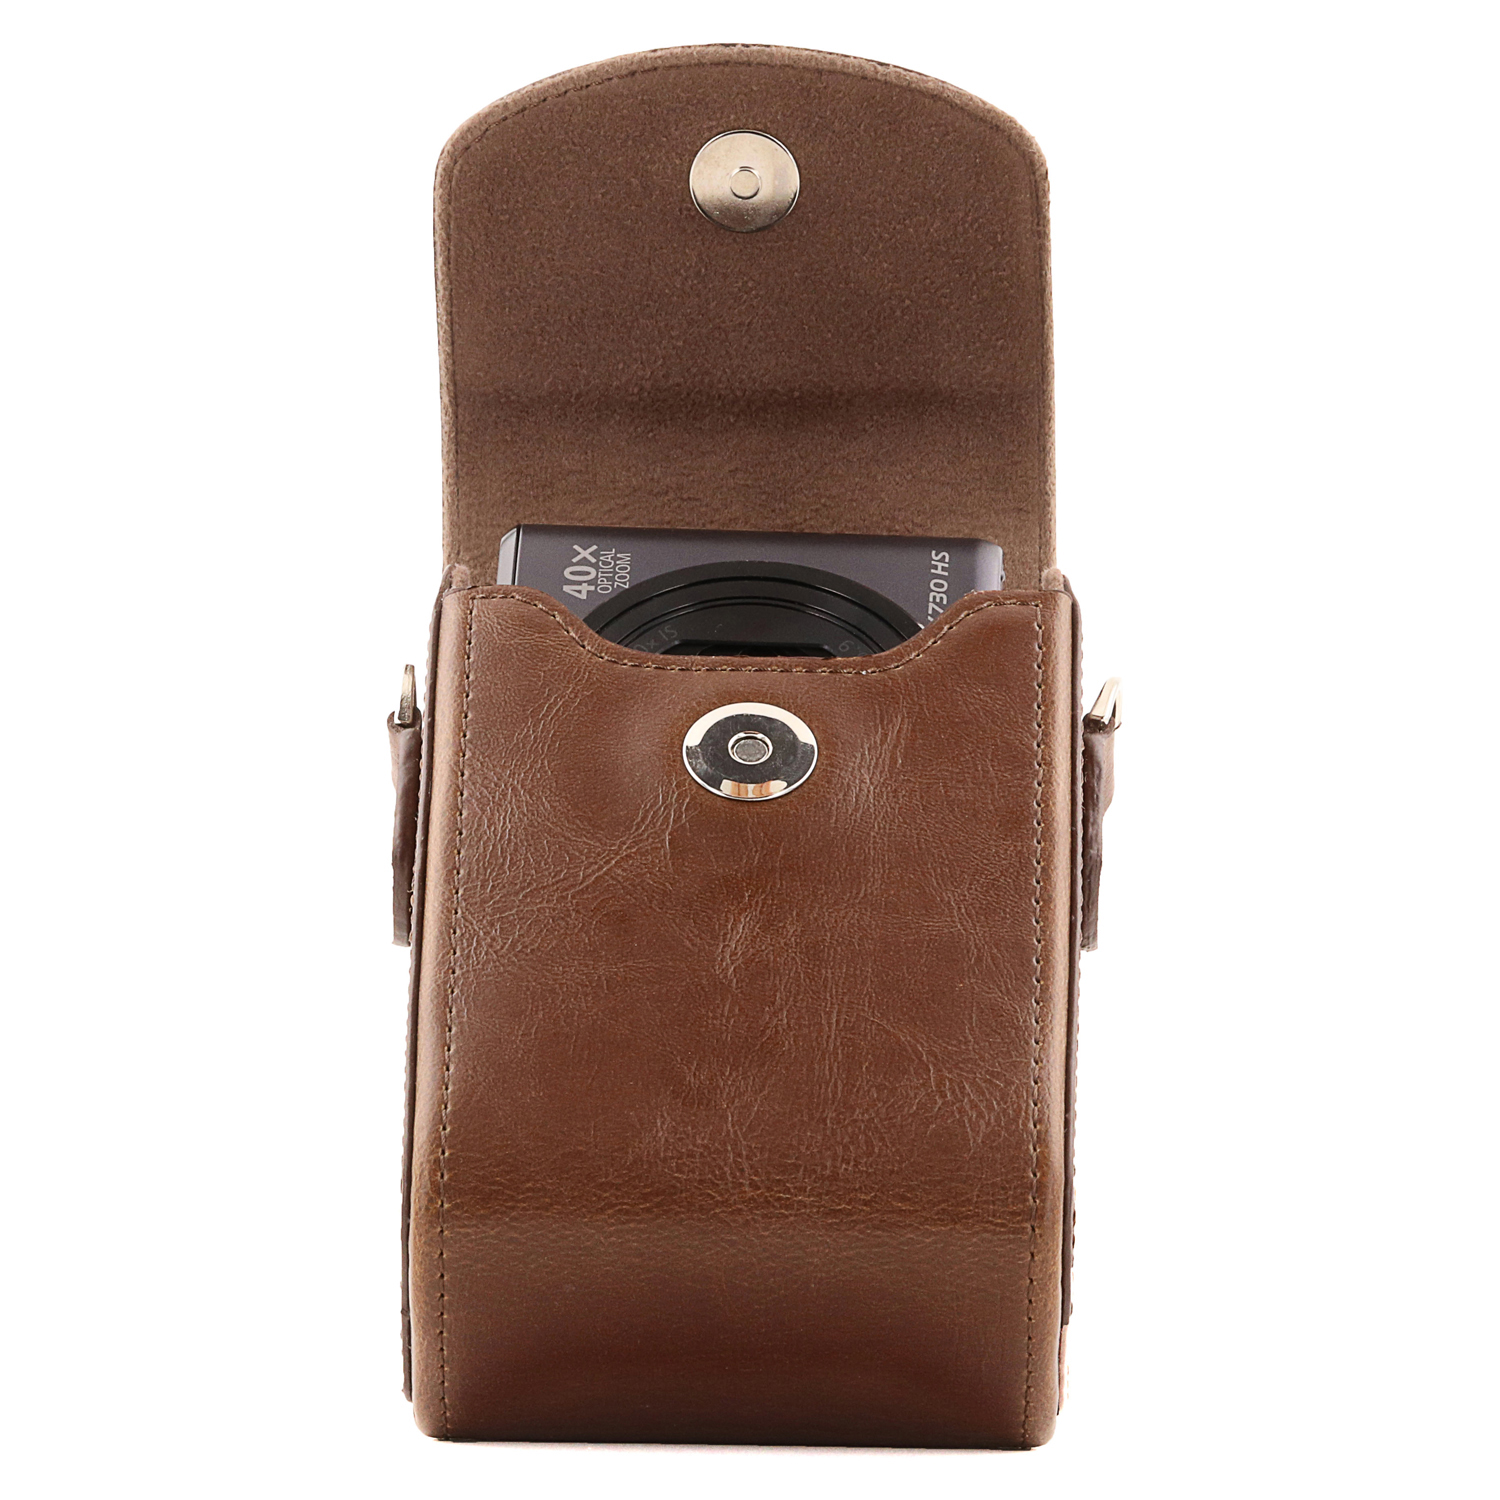 MegaGear Nikon Coolpix A900 Leather Camera Case With Strap